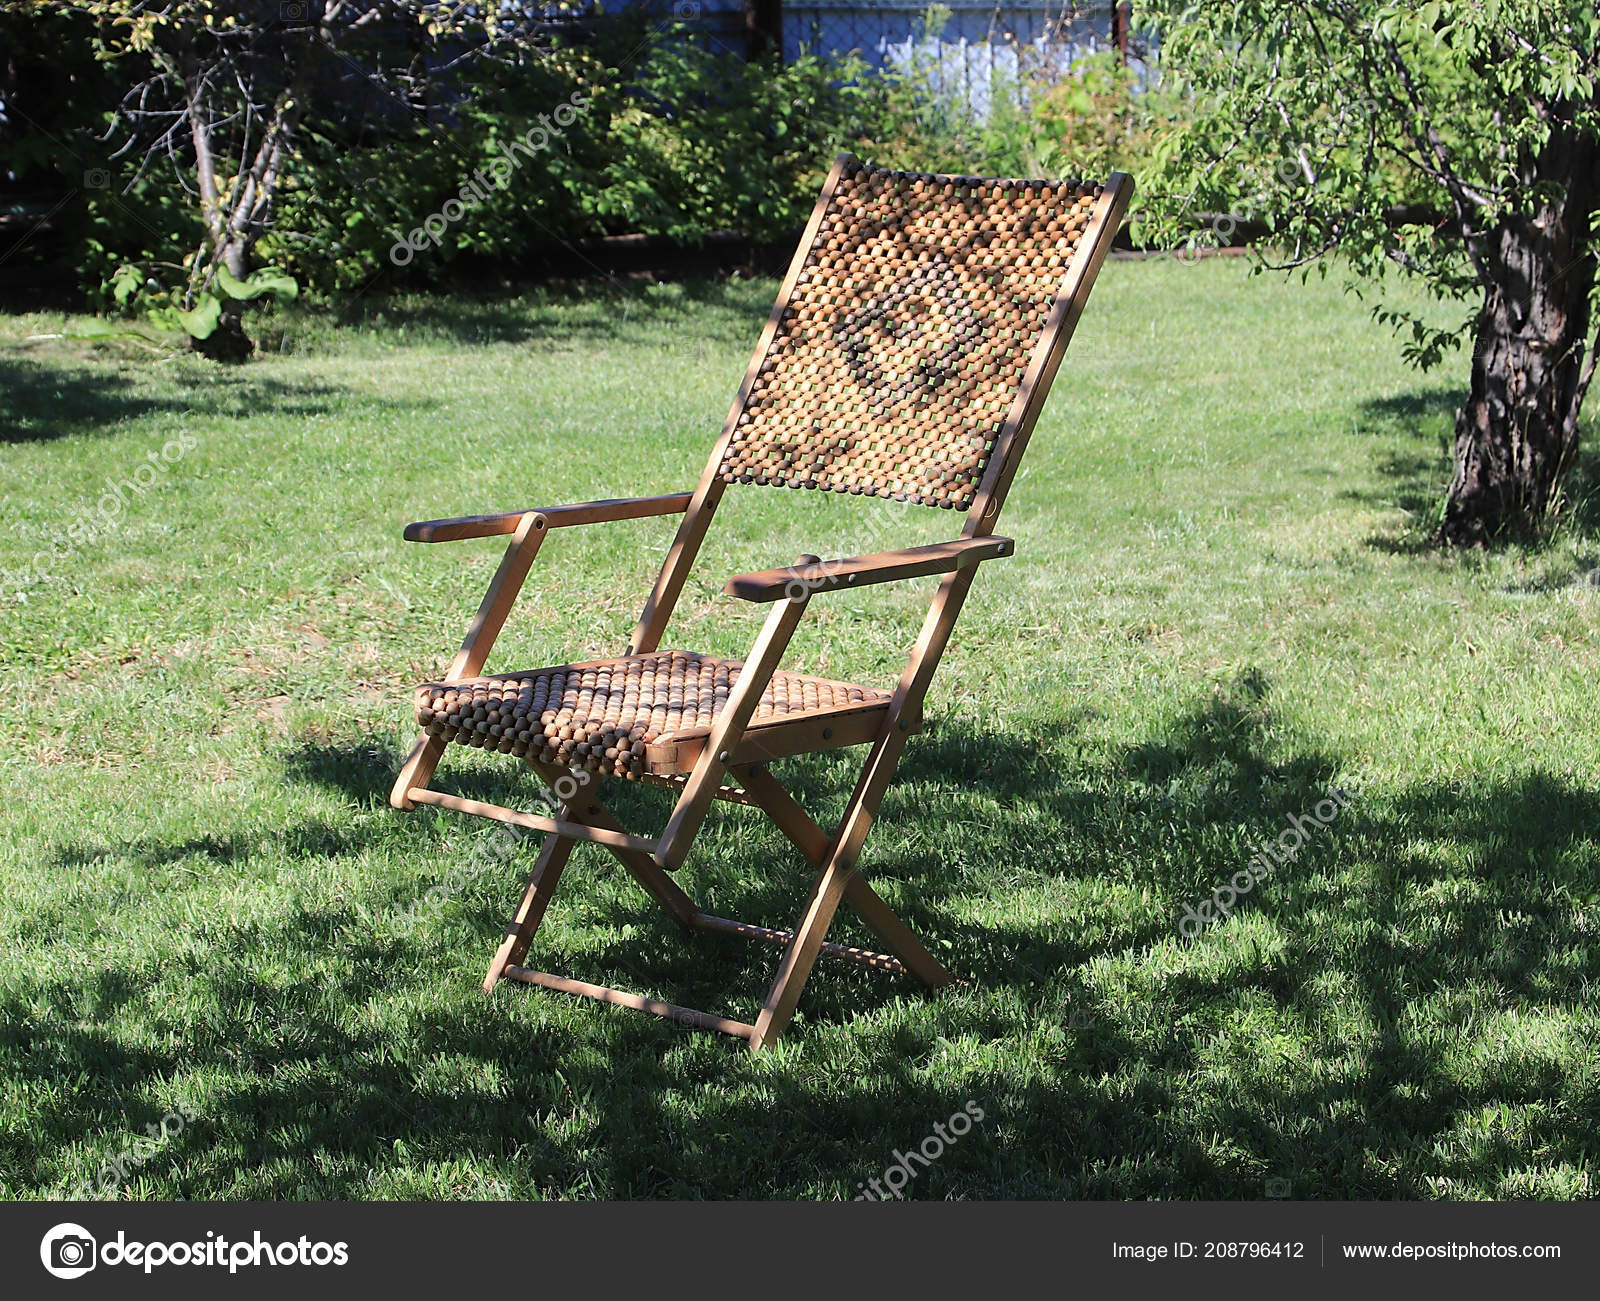 Wooden Chaise Longue Relaxing Stays Green Grass Lawn Stock Photo